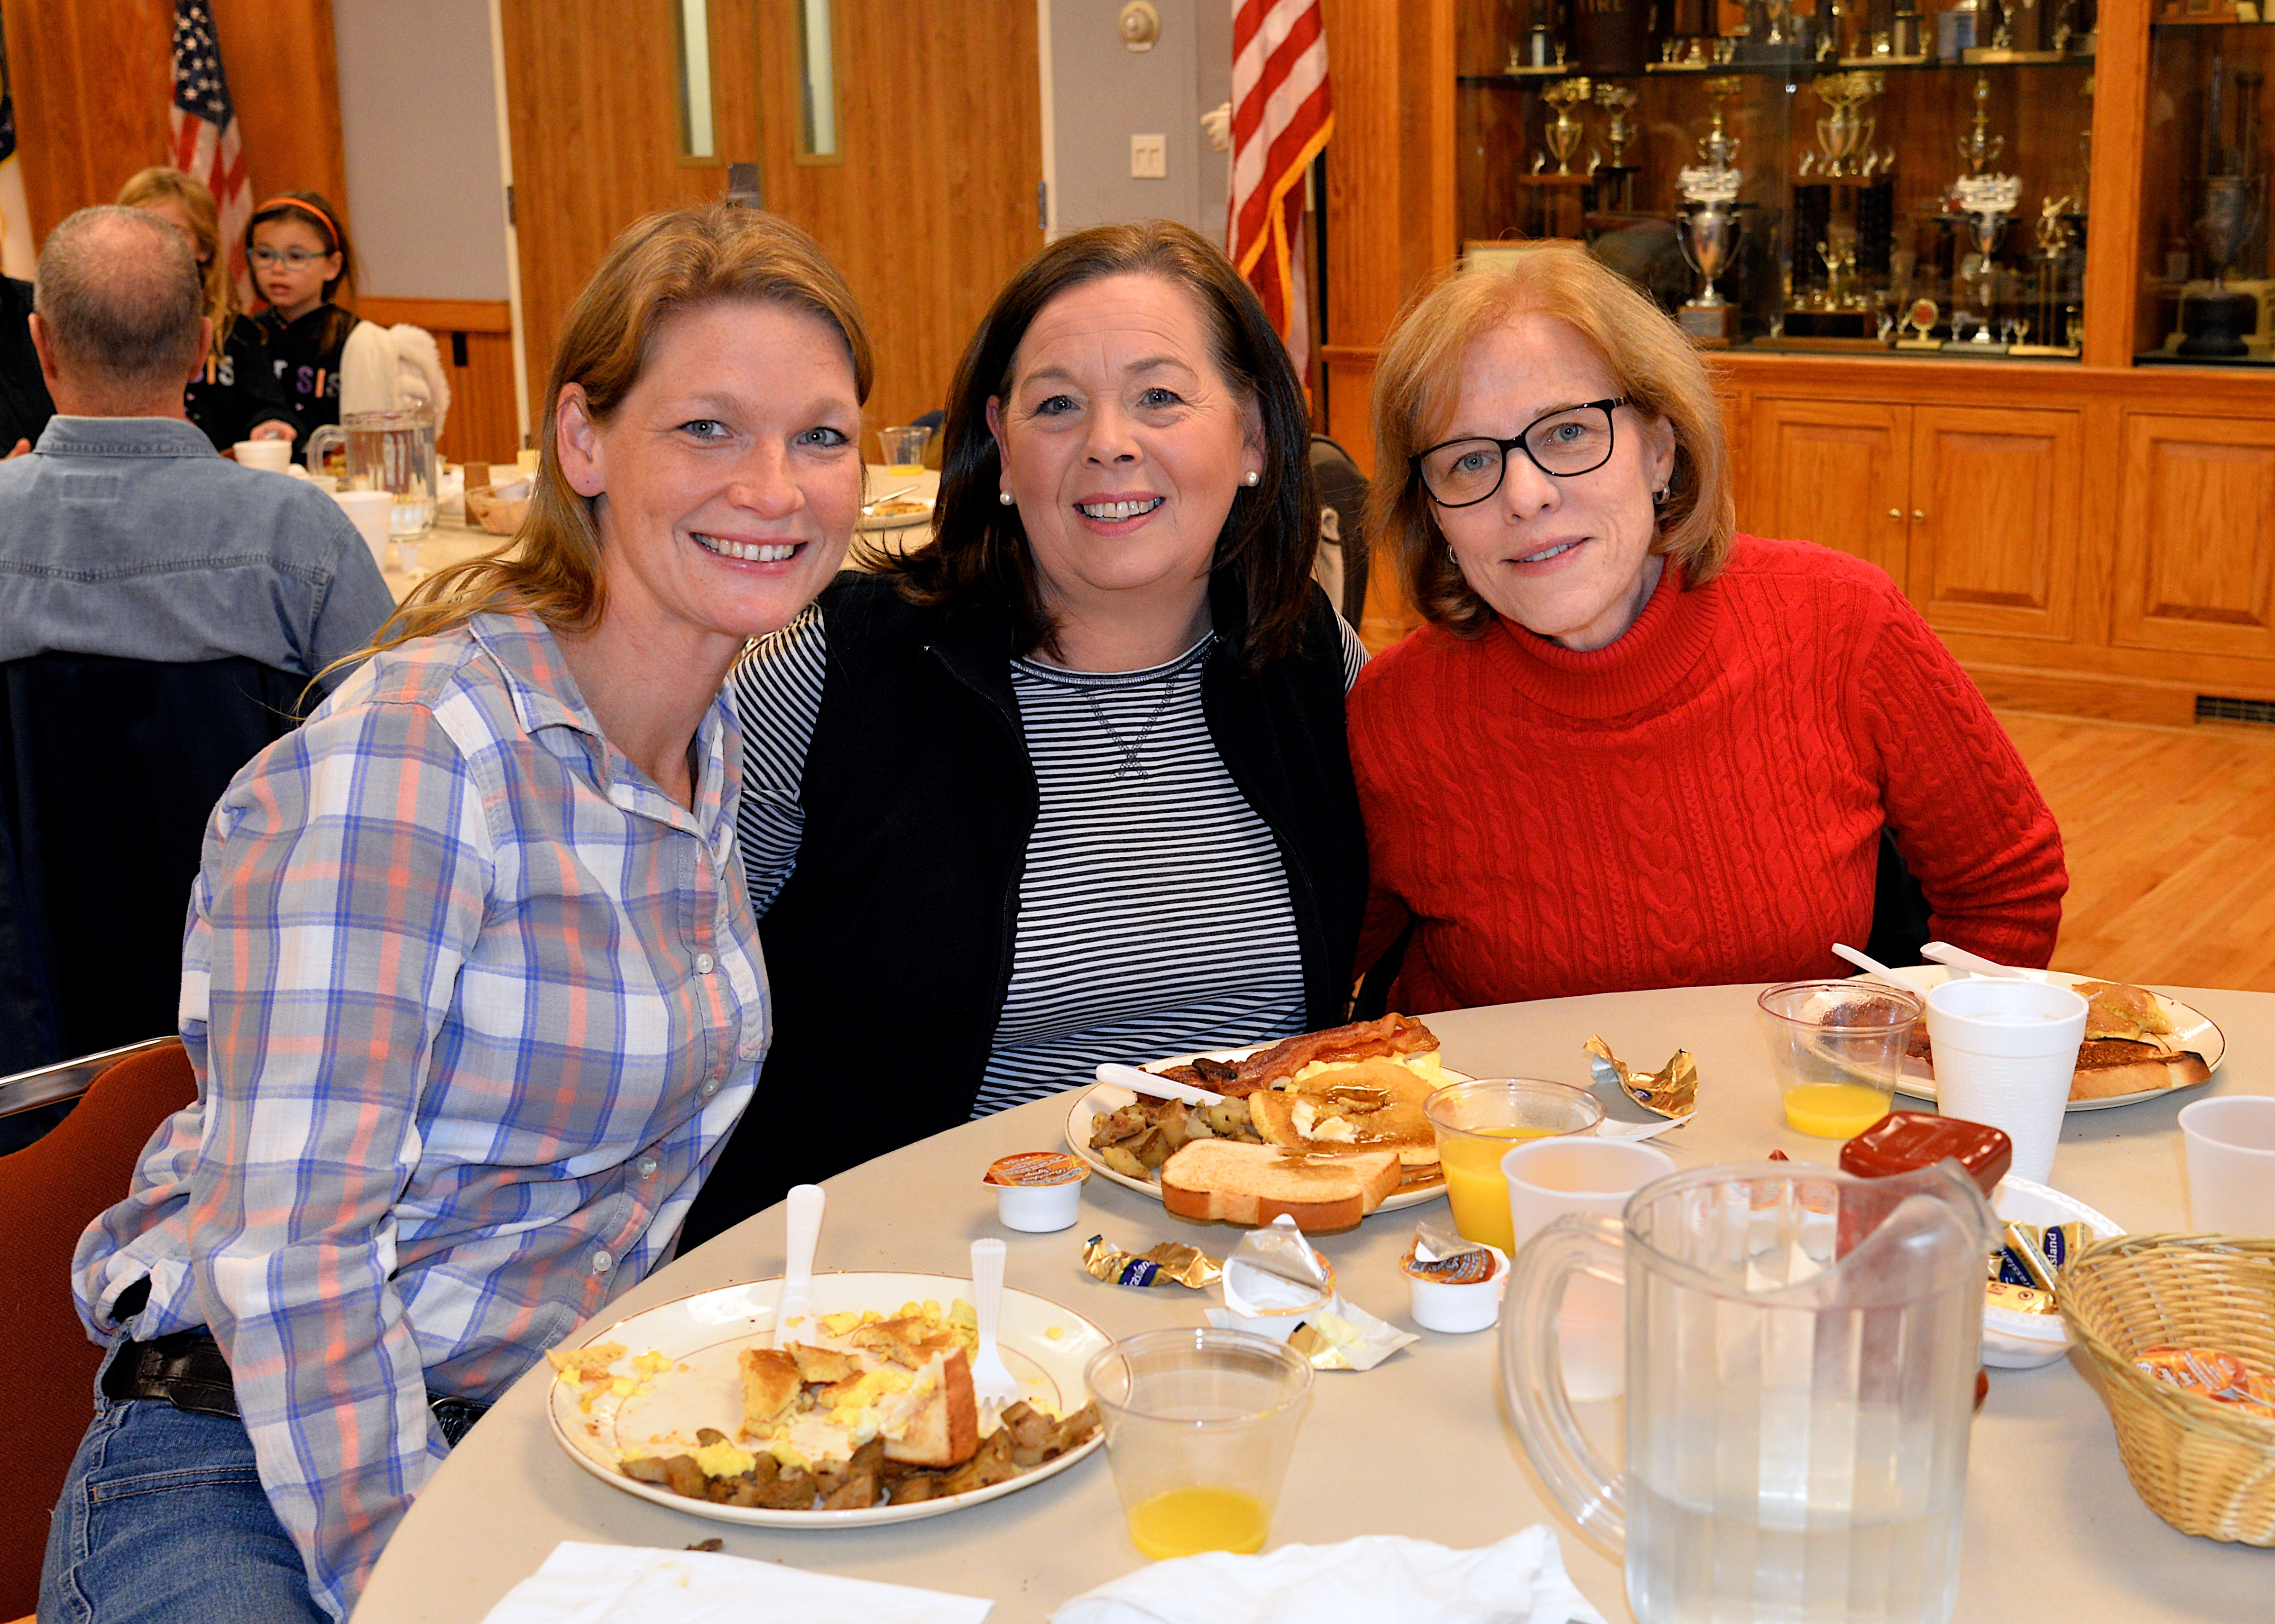 The East Hampton Fire Department hosted a pancake breakfast on Sunday, raising funds for the Eleanor Whitmore Early Childhood Center. From left, Erin Abran, Alison Anderson and Barbara Bock turned out to support the effort. KYRIL BROMLEY